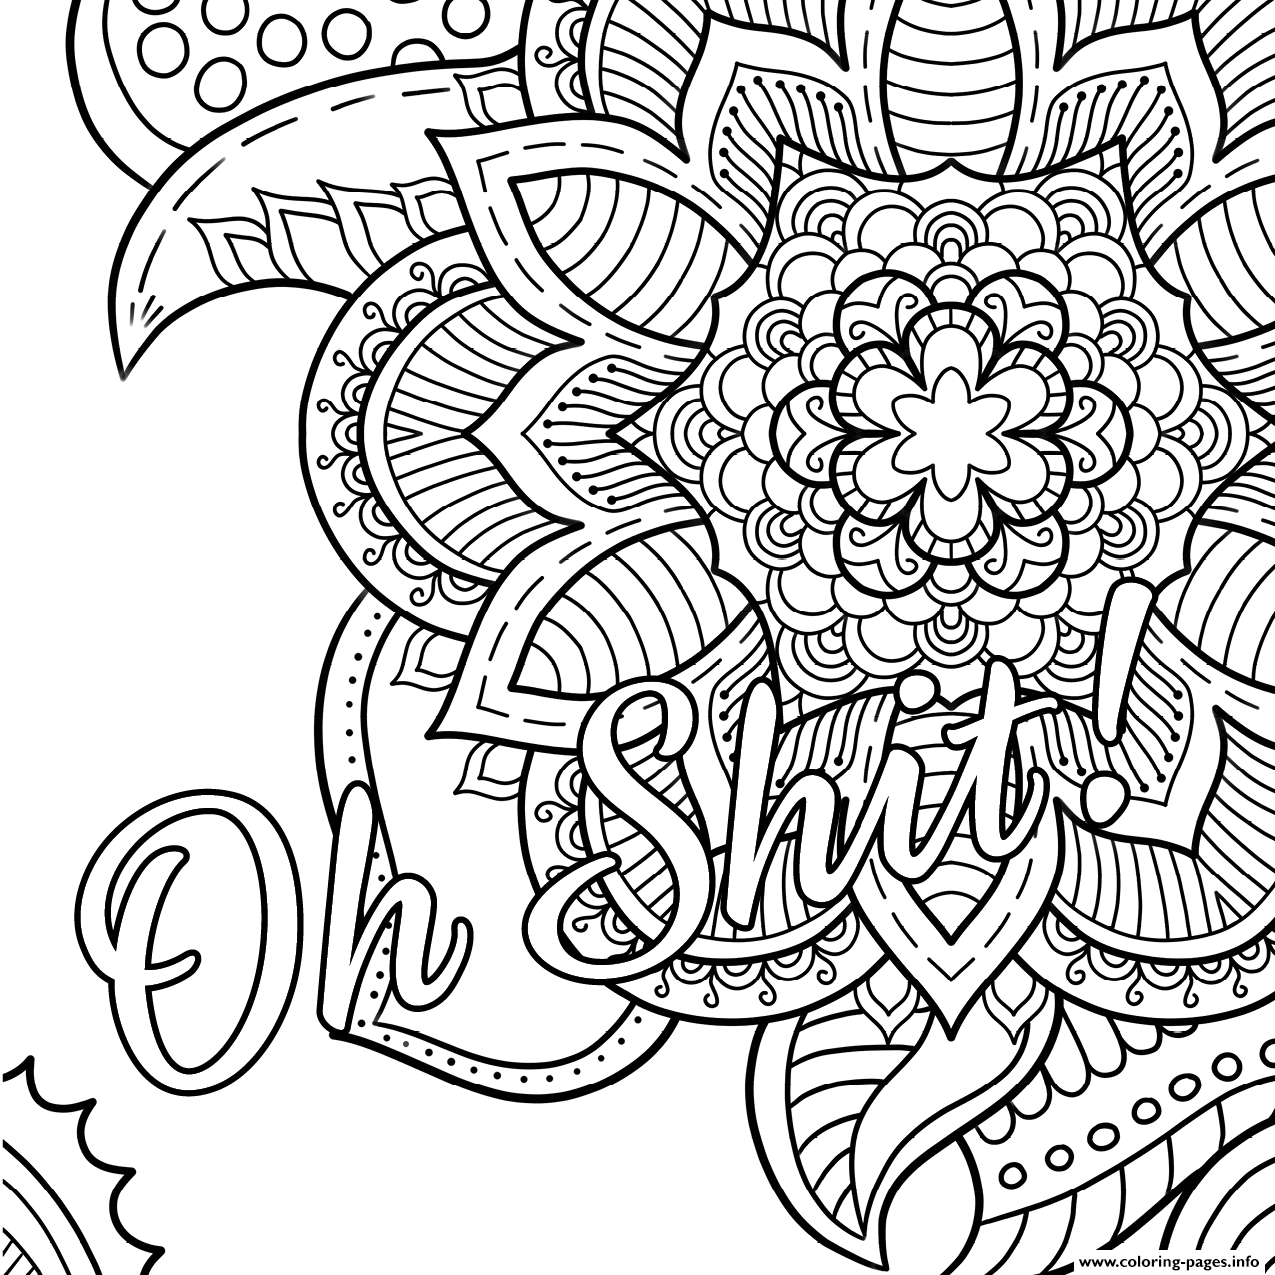 Oh Shit Swear Word coloring pages